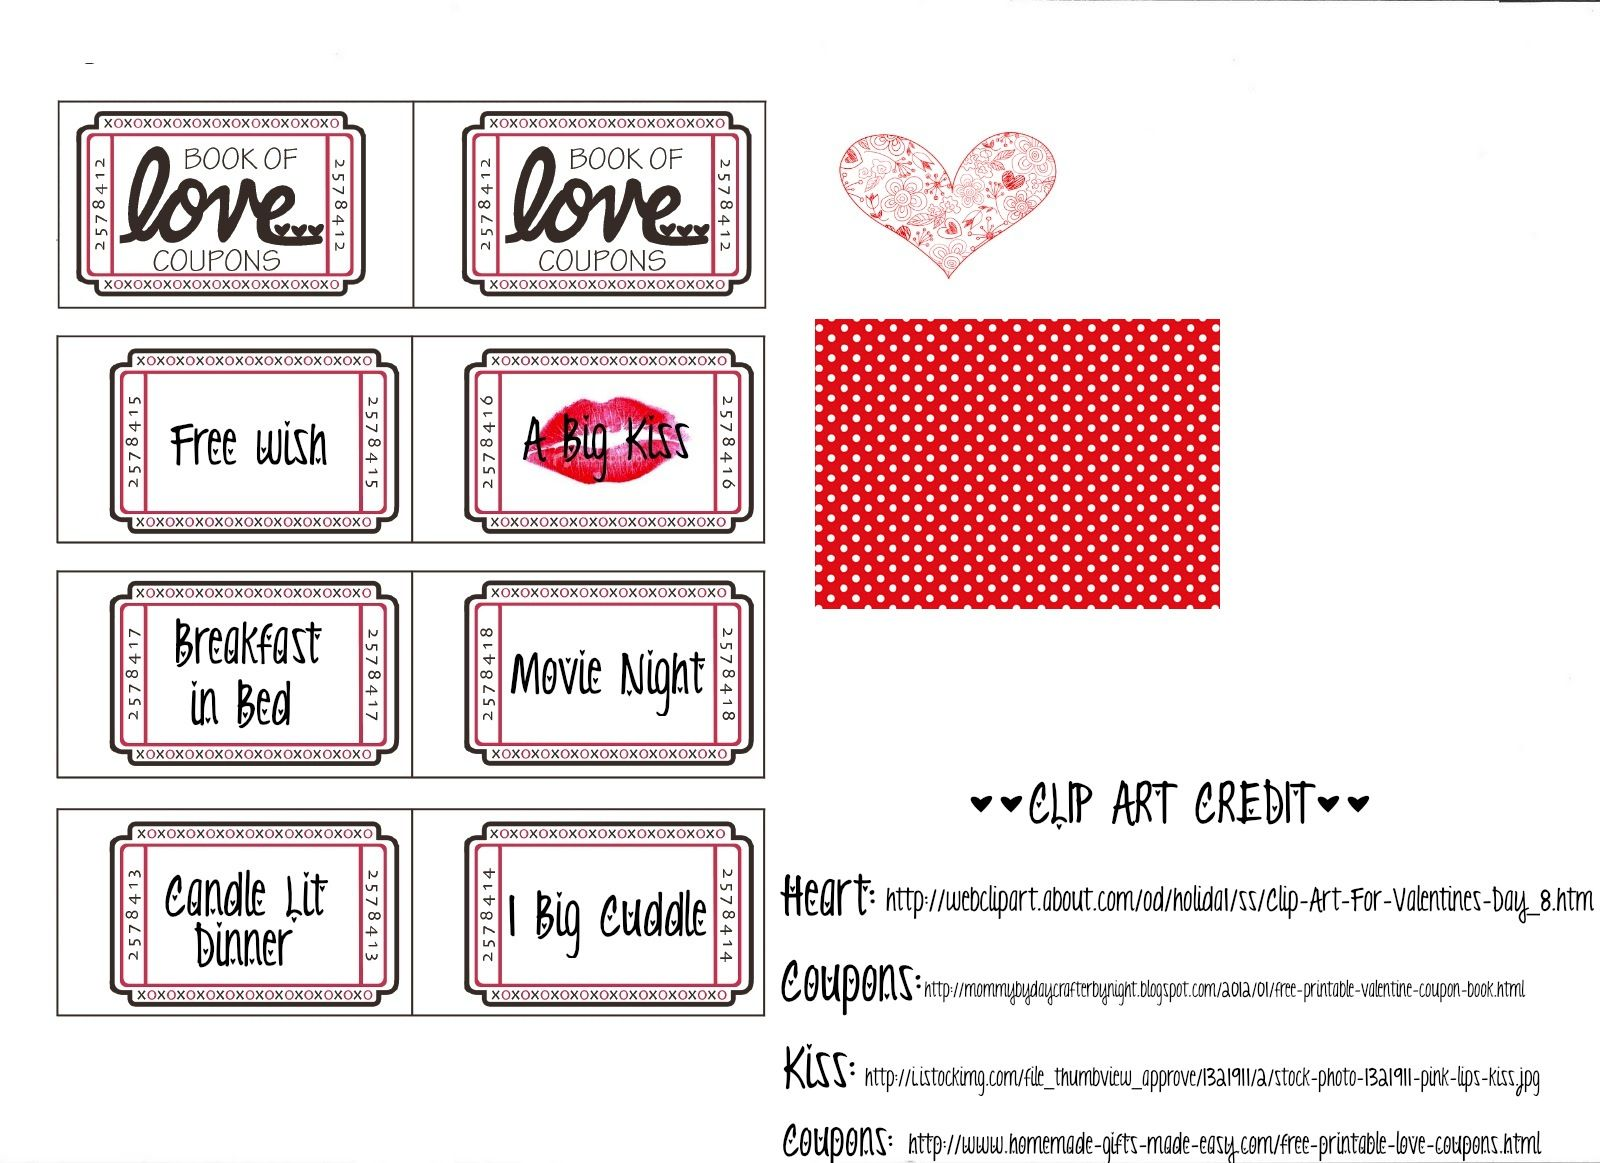 cute coupon book - Kardas.klmphotography.co